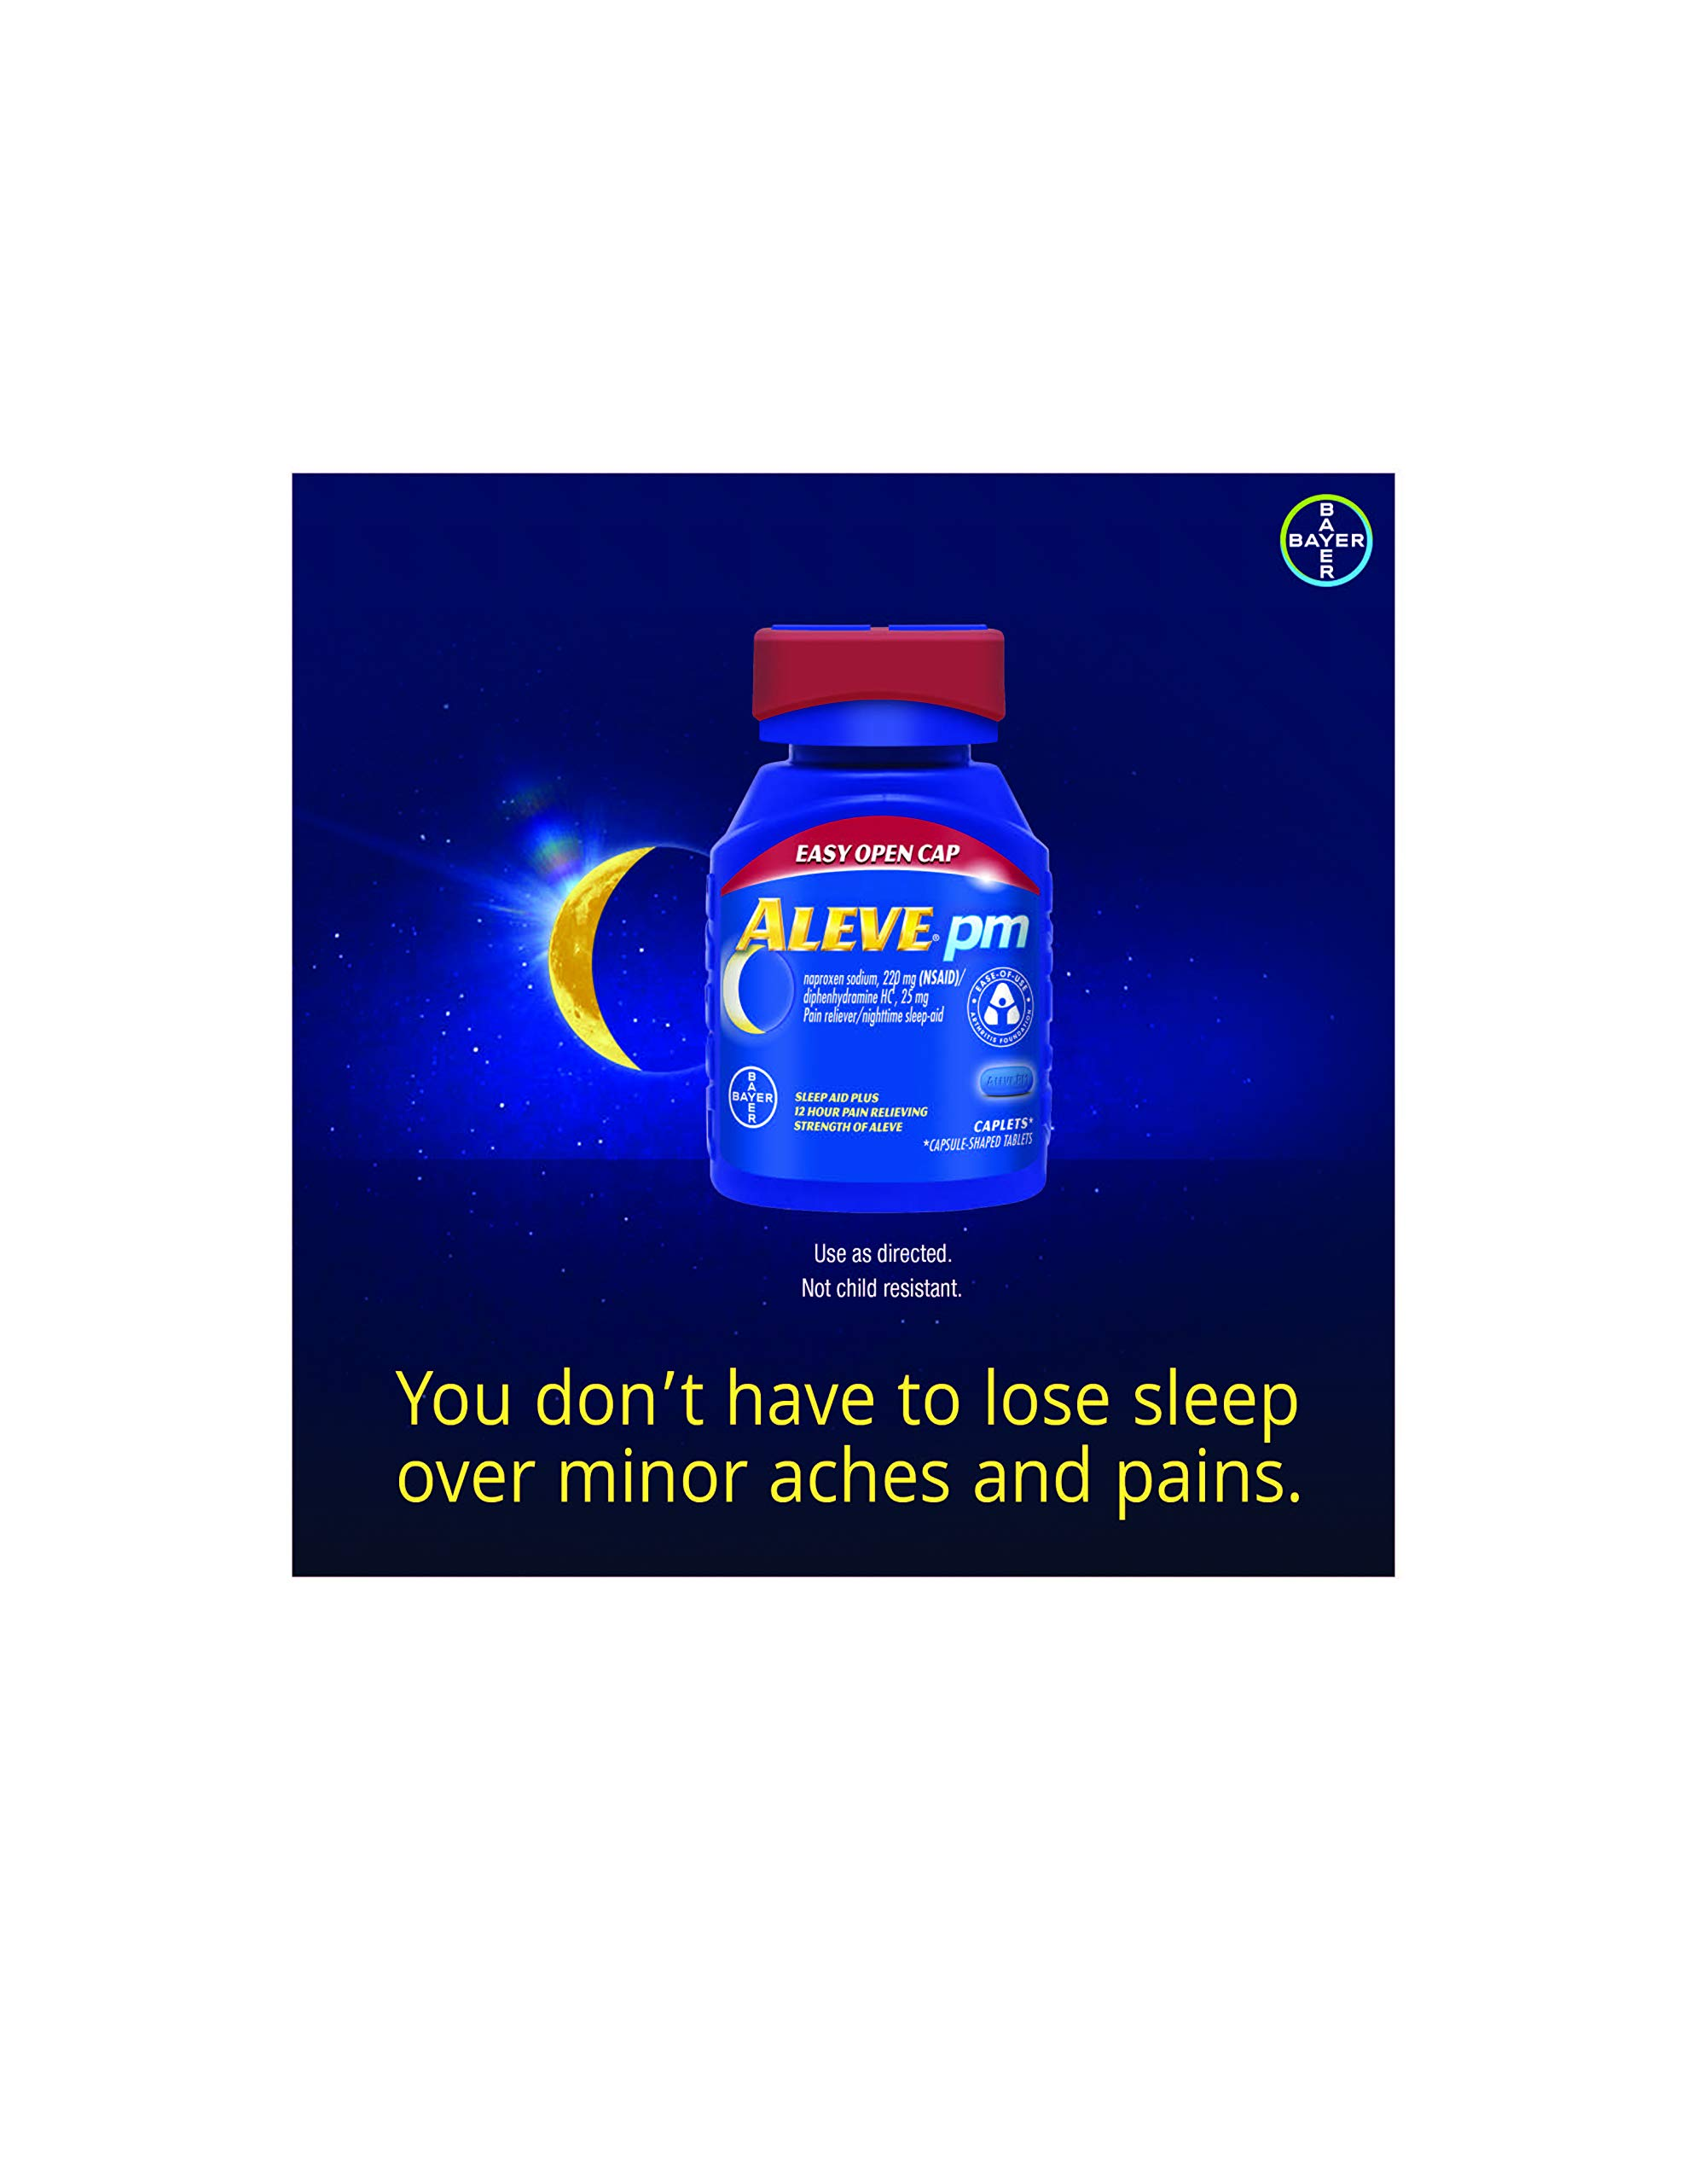 Aleve PM with Easy Open Arthritis Cap, Caplets with Naproxen Sodium, 220mg (NSAID) Pain Reliever/Fever Reducer/Sleep Aid, 80 Count by Aleve